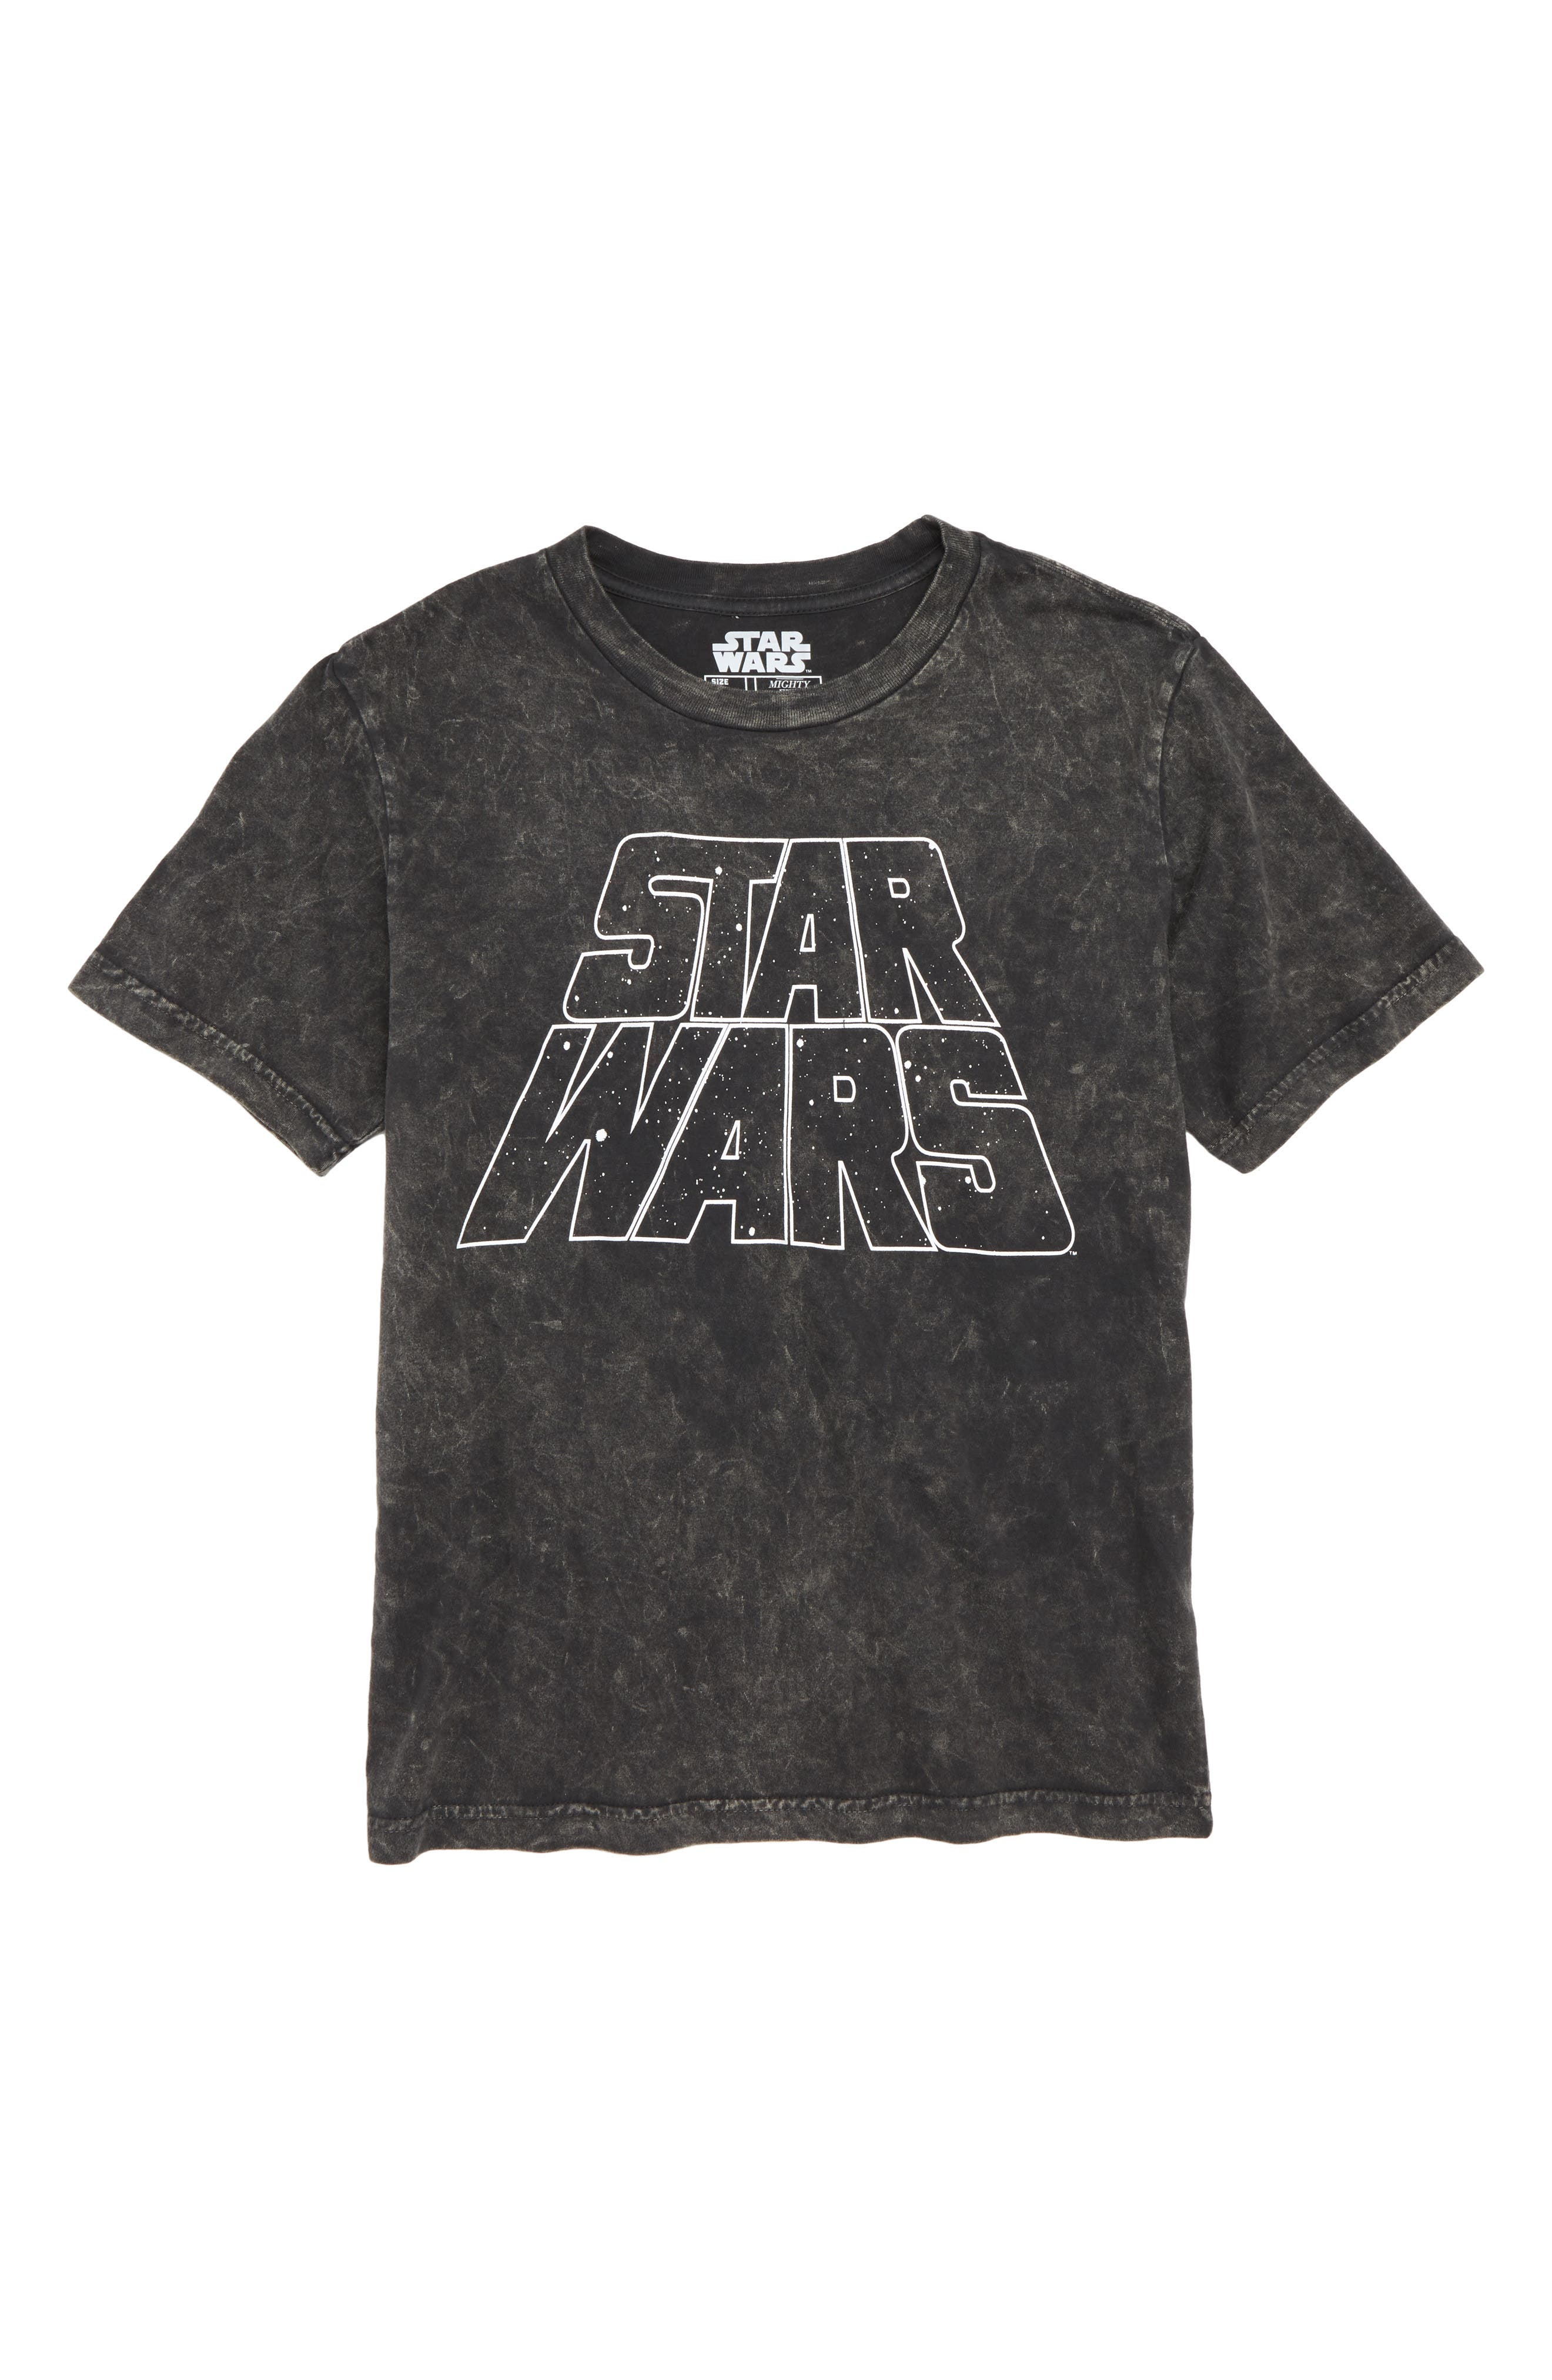 Star Wars<sup>™</sup> Graphic T-Shirt,                         Main,                         color, CHARCOAL WASHED